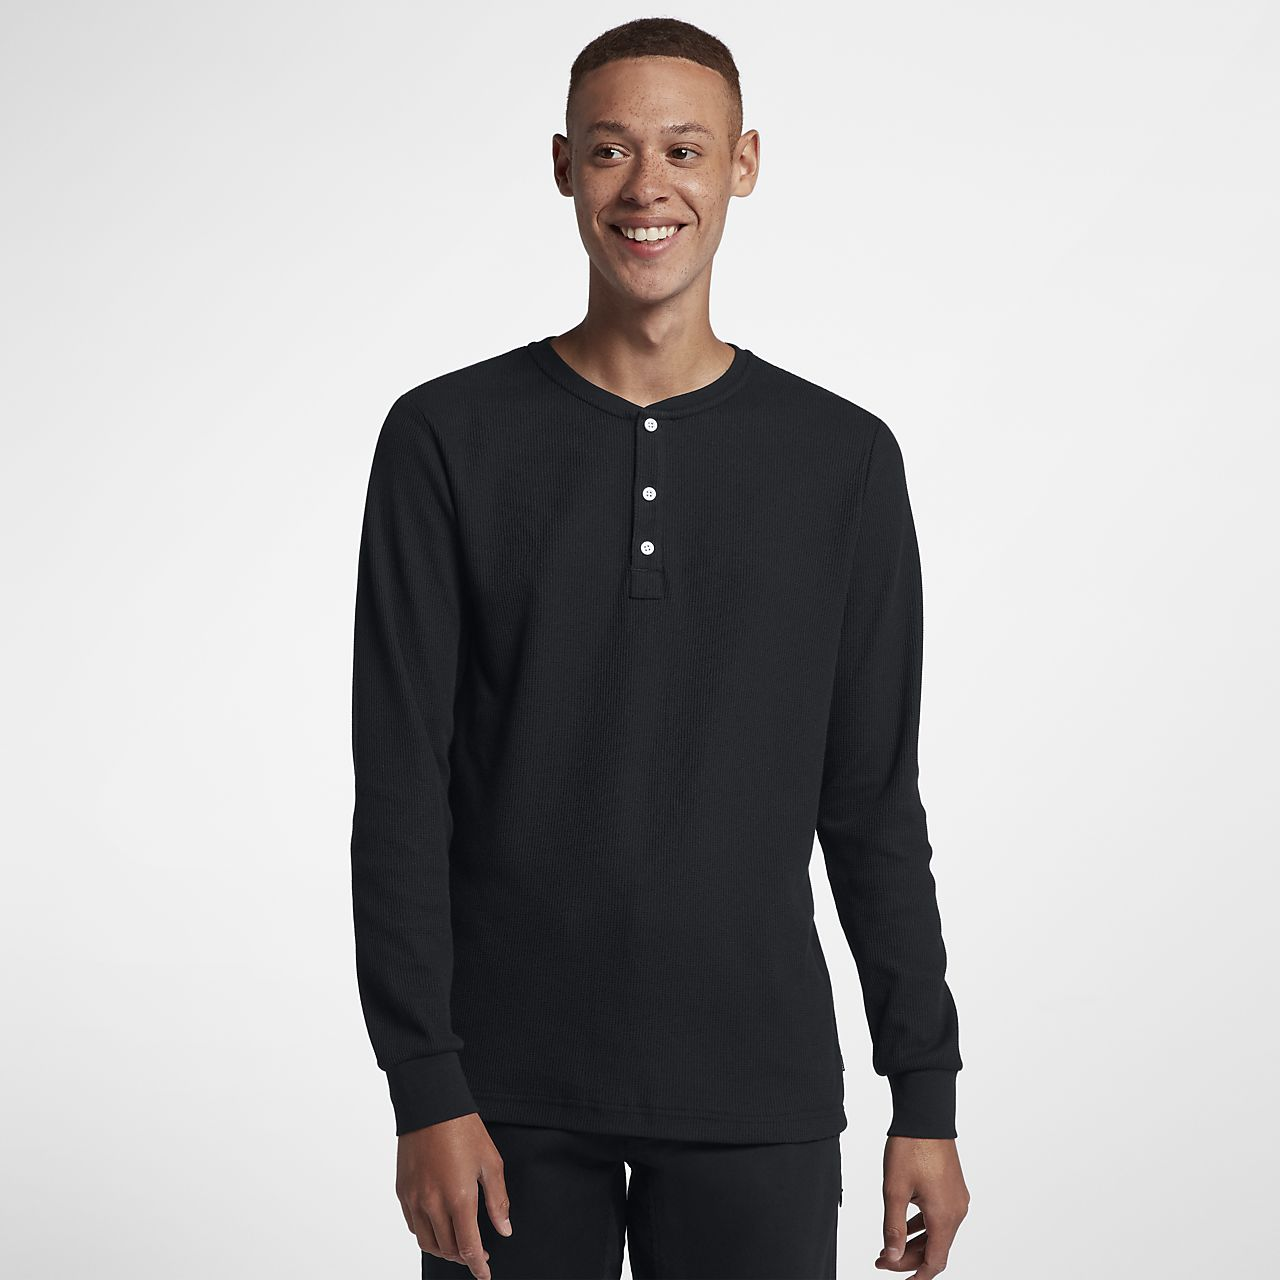 c0dbe786d Nike SB Dri-FIT Men's Long-Sleeve Skateboarding Top. Nike.com